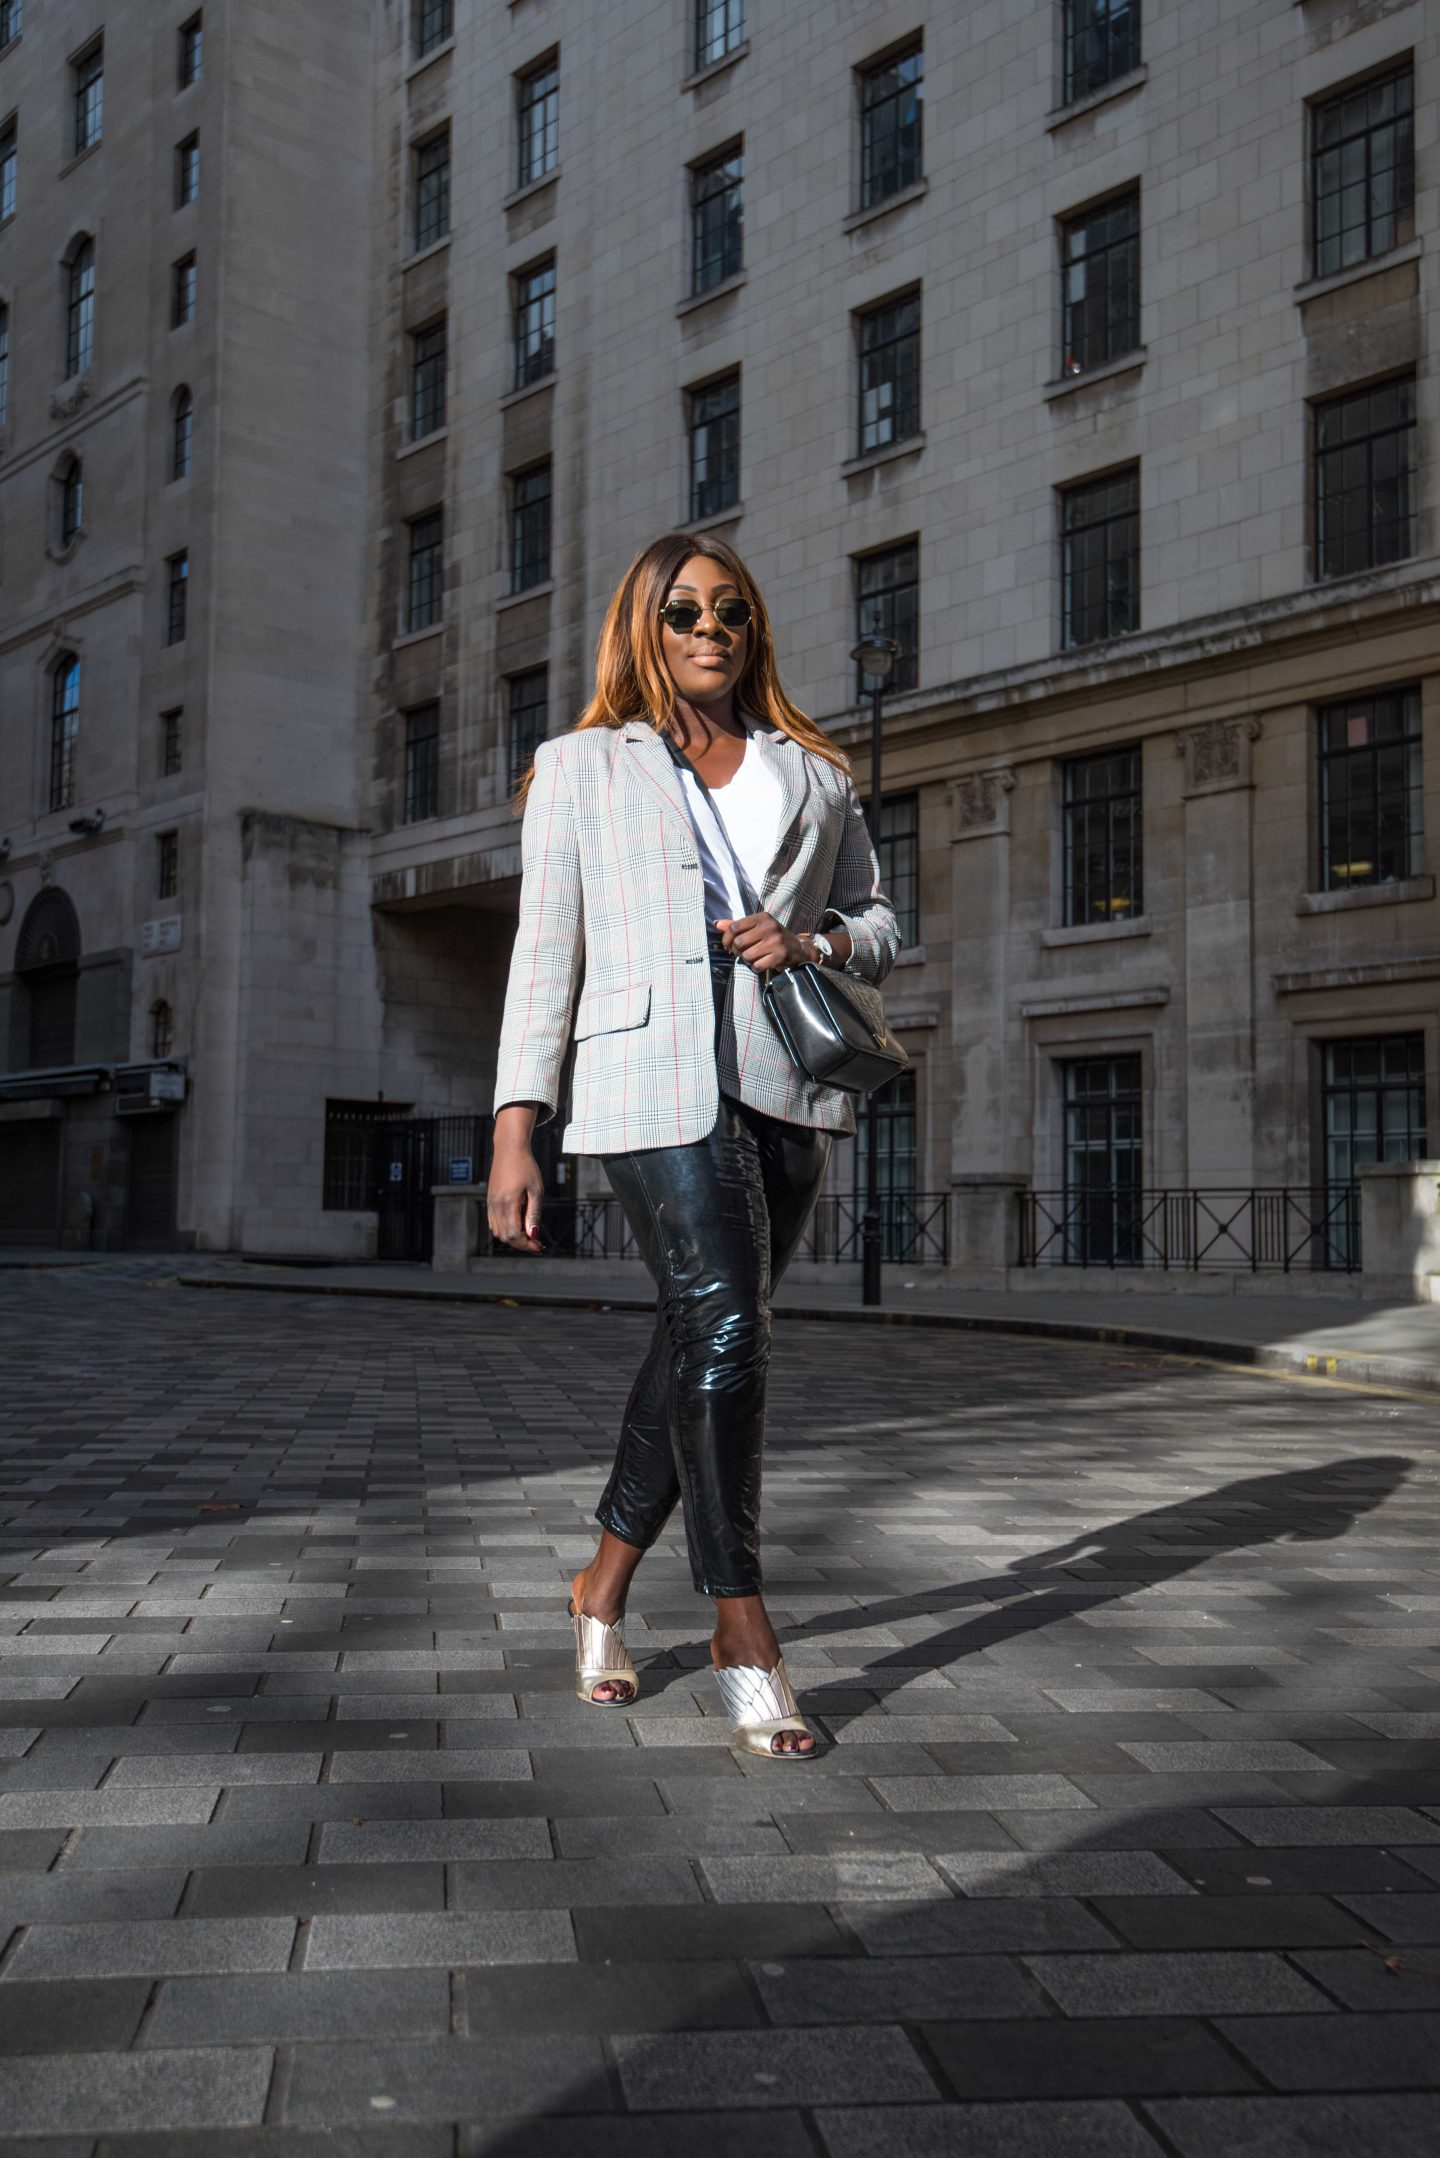 Autumn Workwear & The Vinyl Affect 6 - Zara check blazer - Alexander Wang Bag - vinyl trousers - malone soulier mules - Style and the Sass